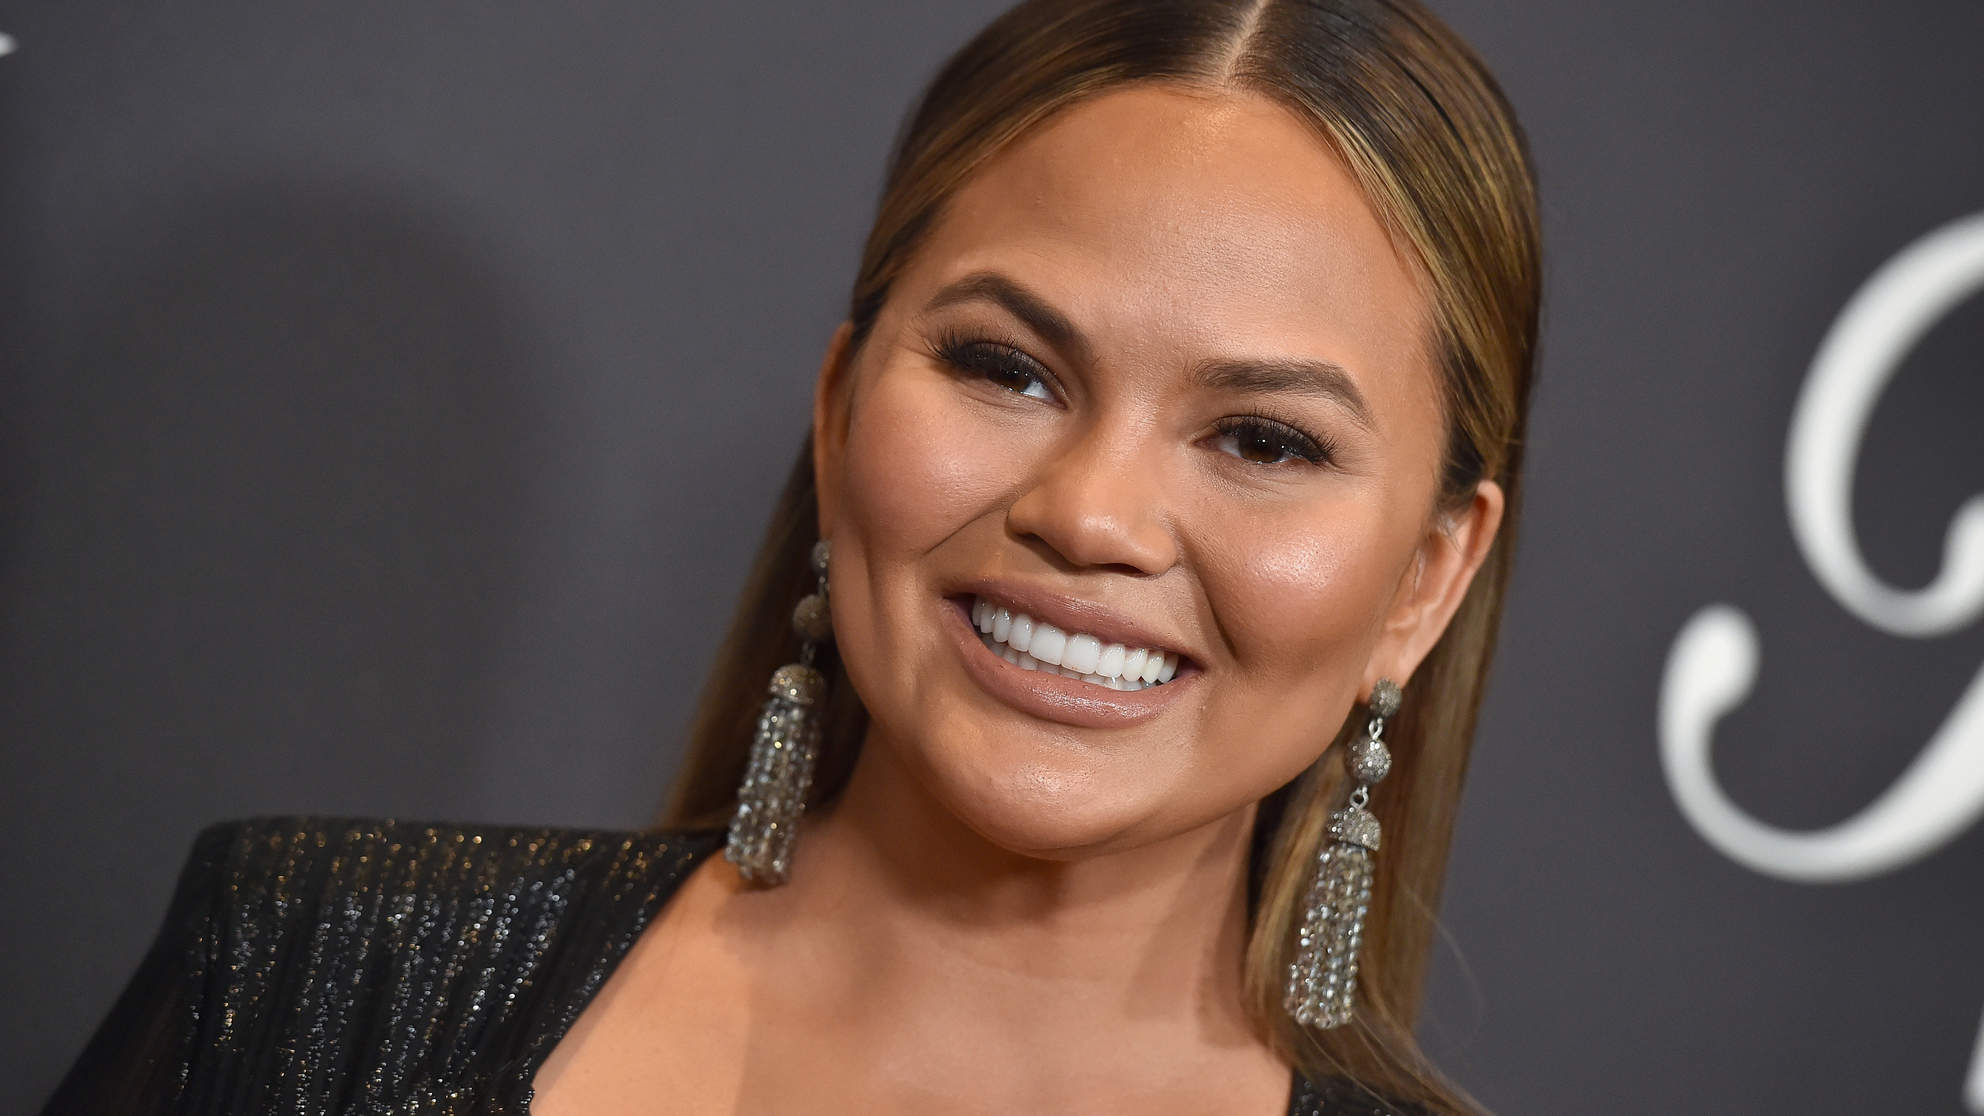 Chrissy Teigen Shares a Photo of Her 'Thigh Hives' and 'Fun' Stretch Marks with Fans